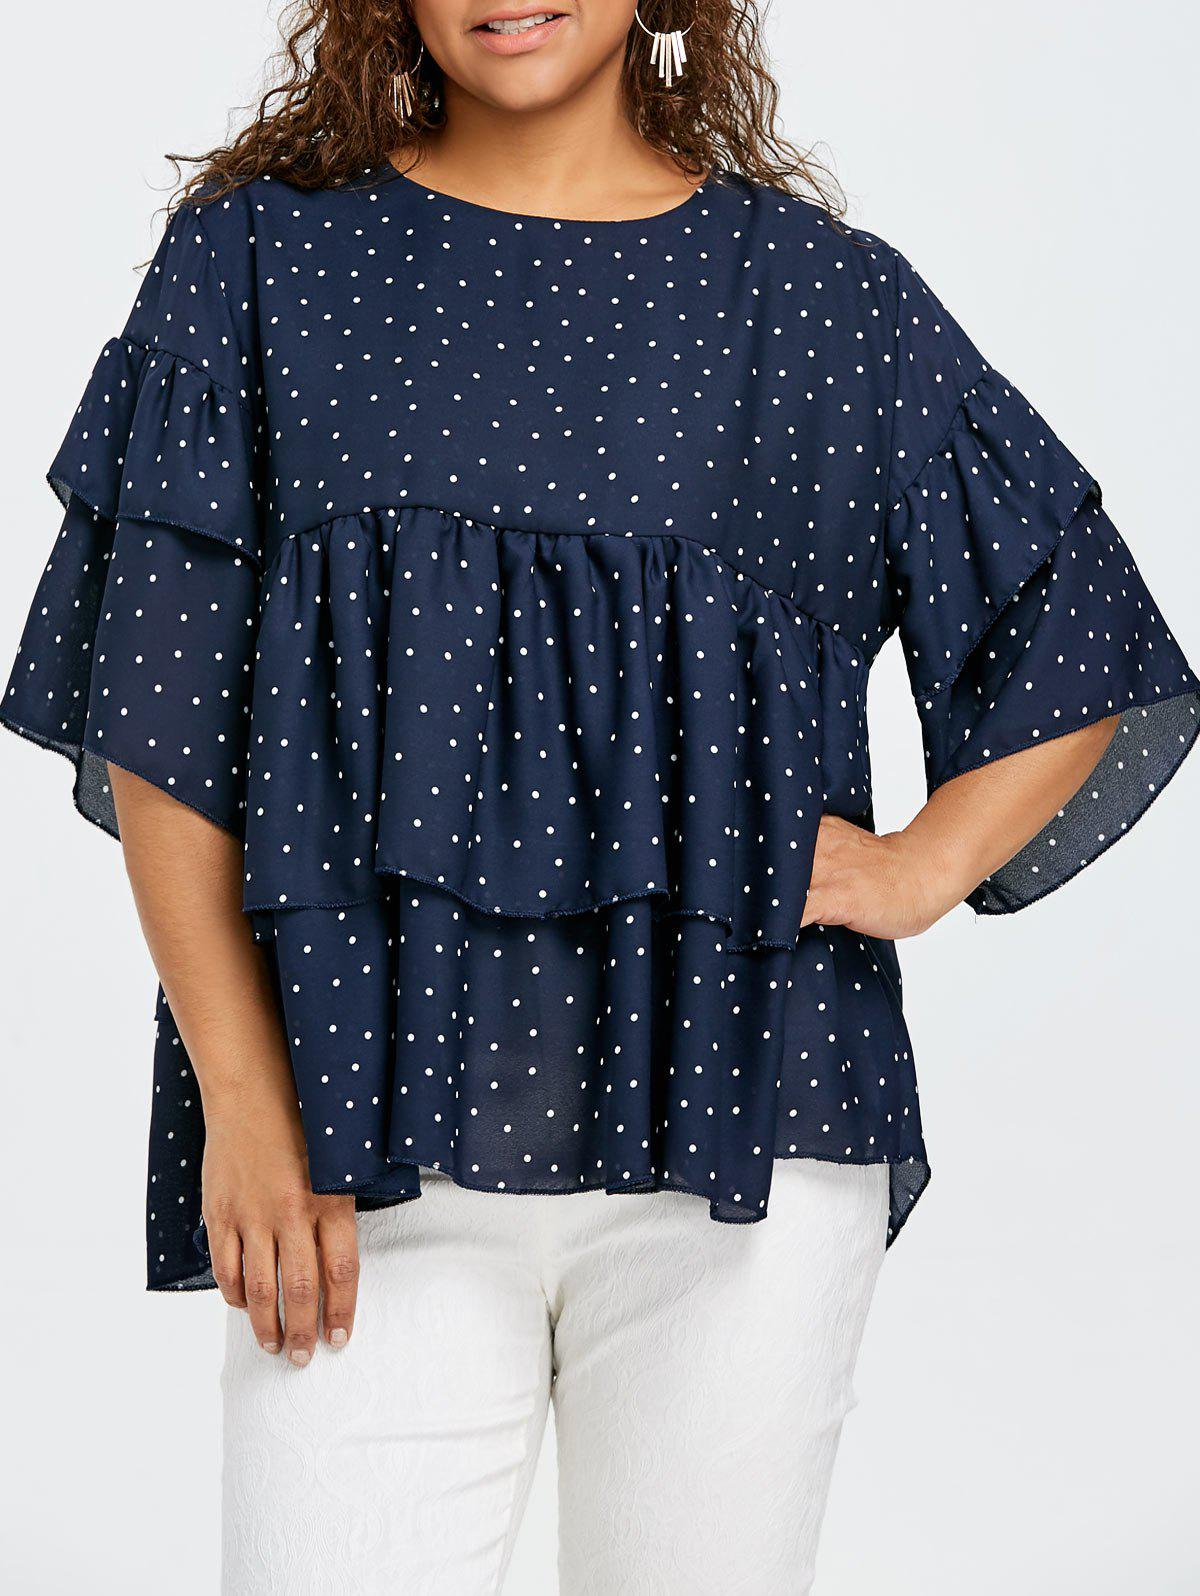 Polka Dot Tiered Plus Size Blouse - CADETBLUE 5XL